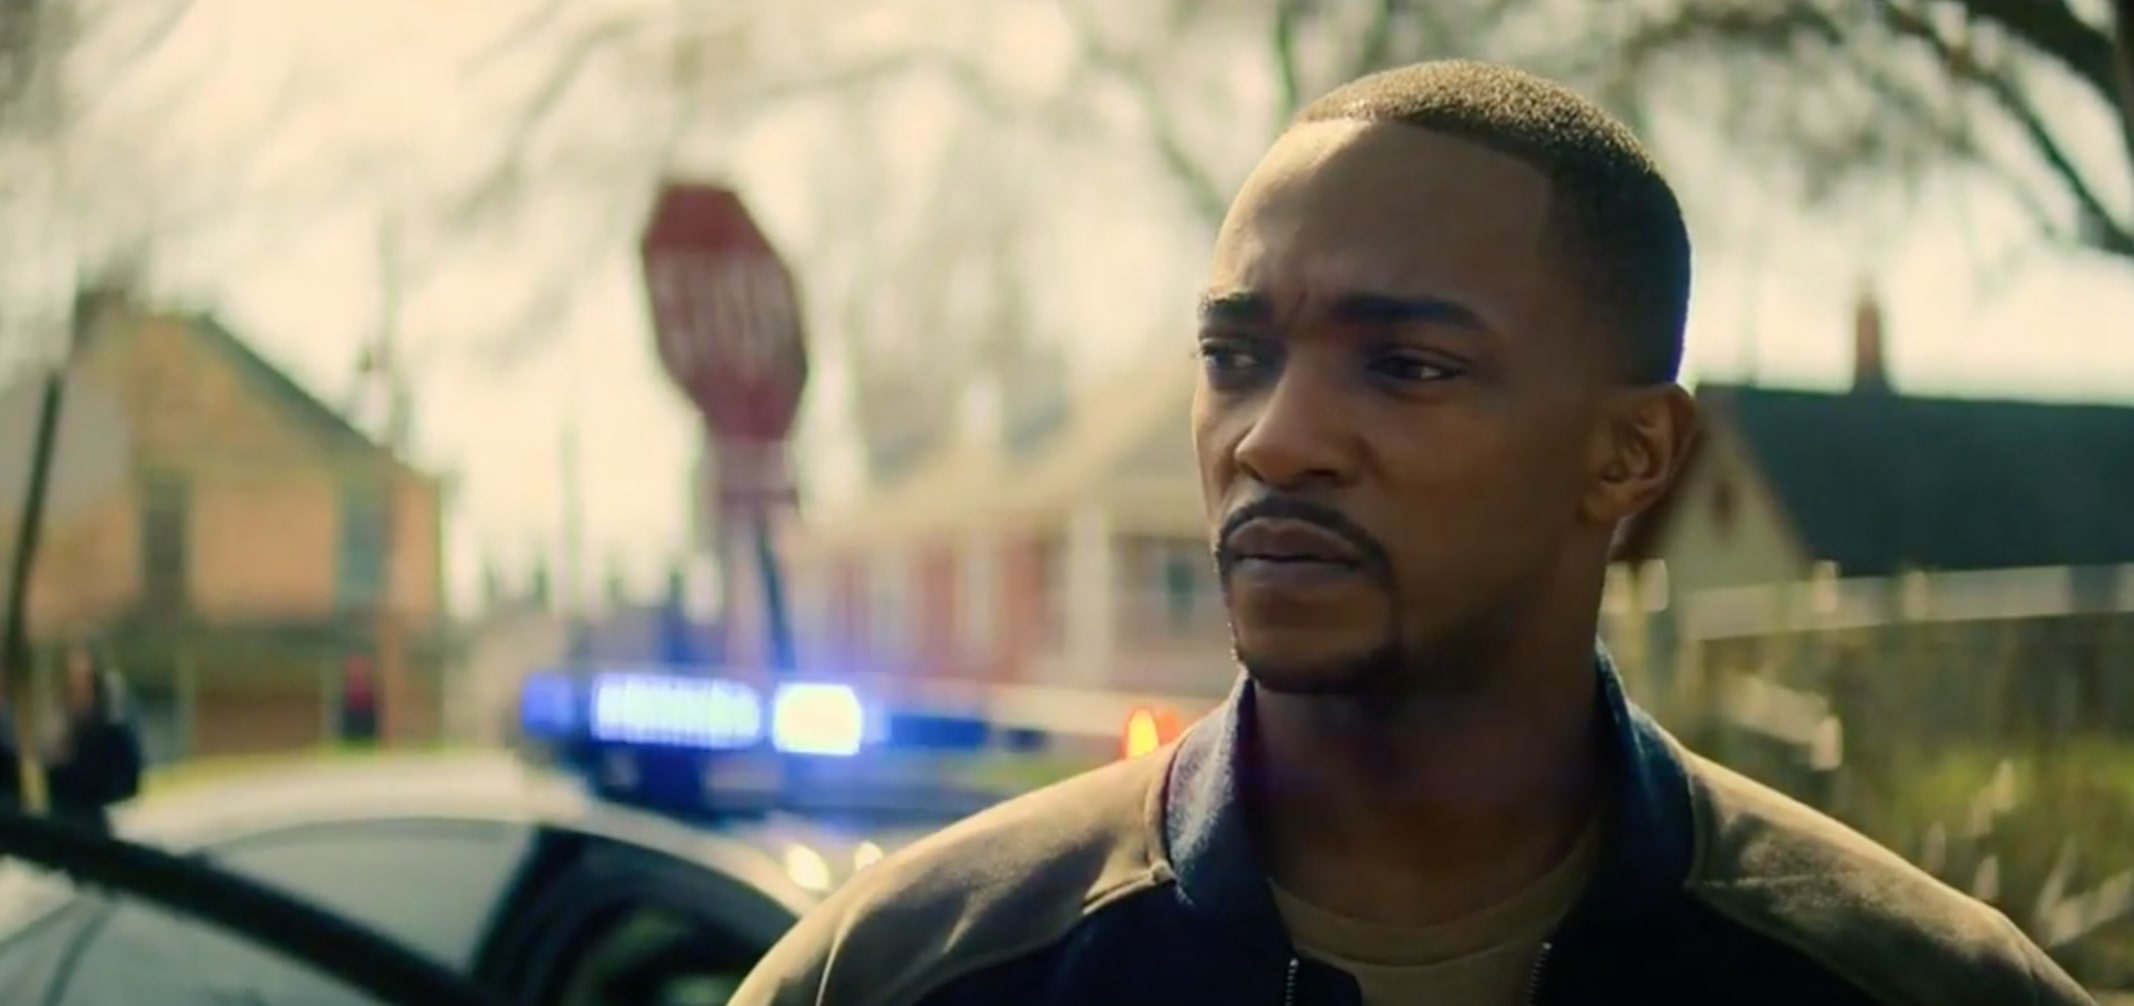 The Falcon and The Winter Soldier Fans Infuriated Over Sam Being Racial  Profiled by Police